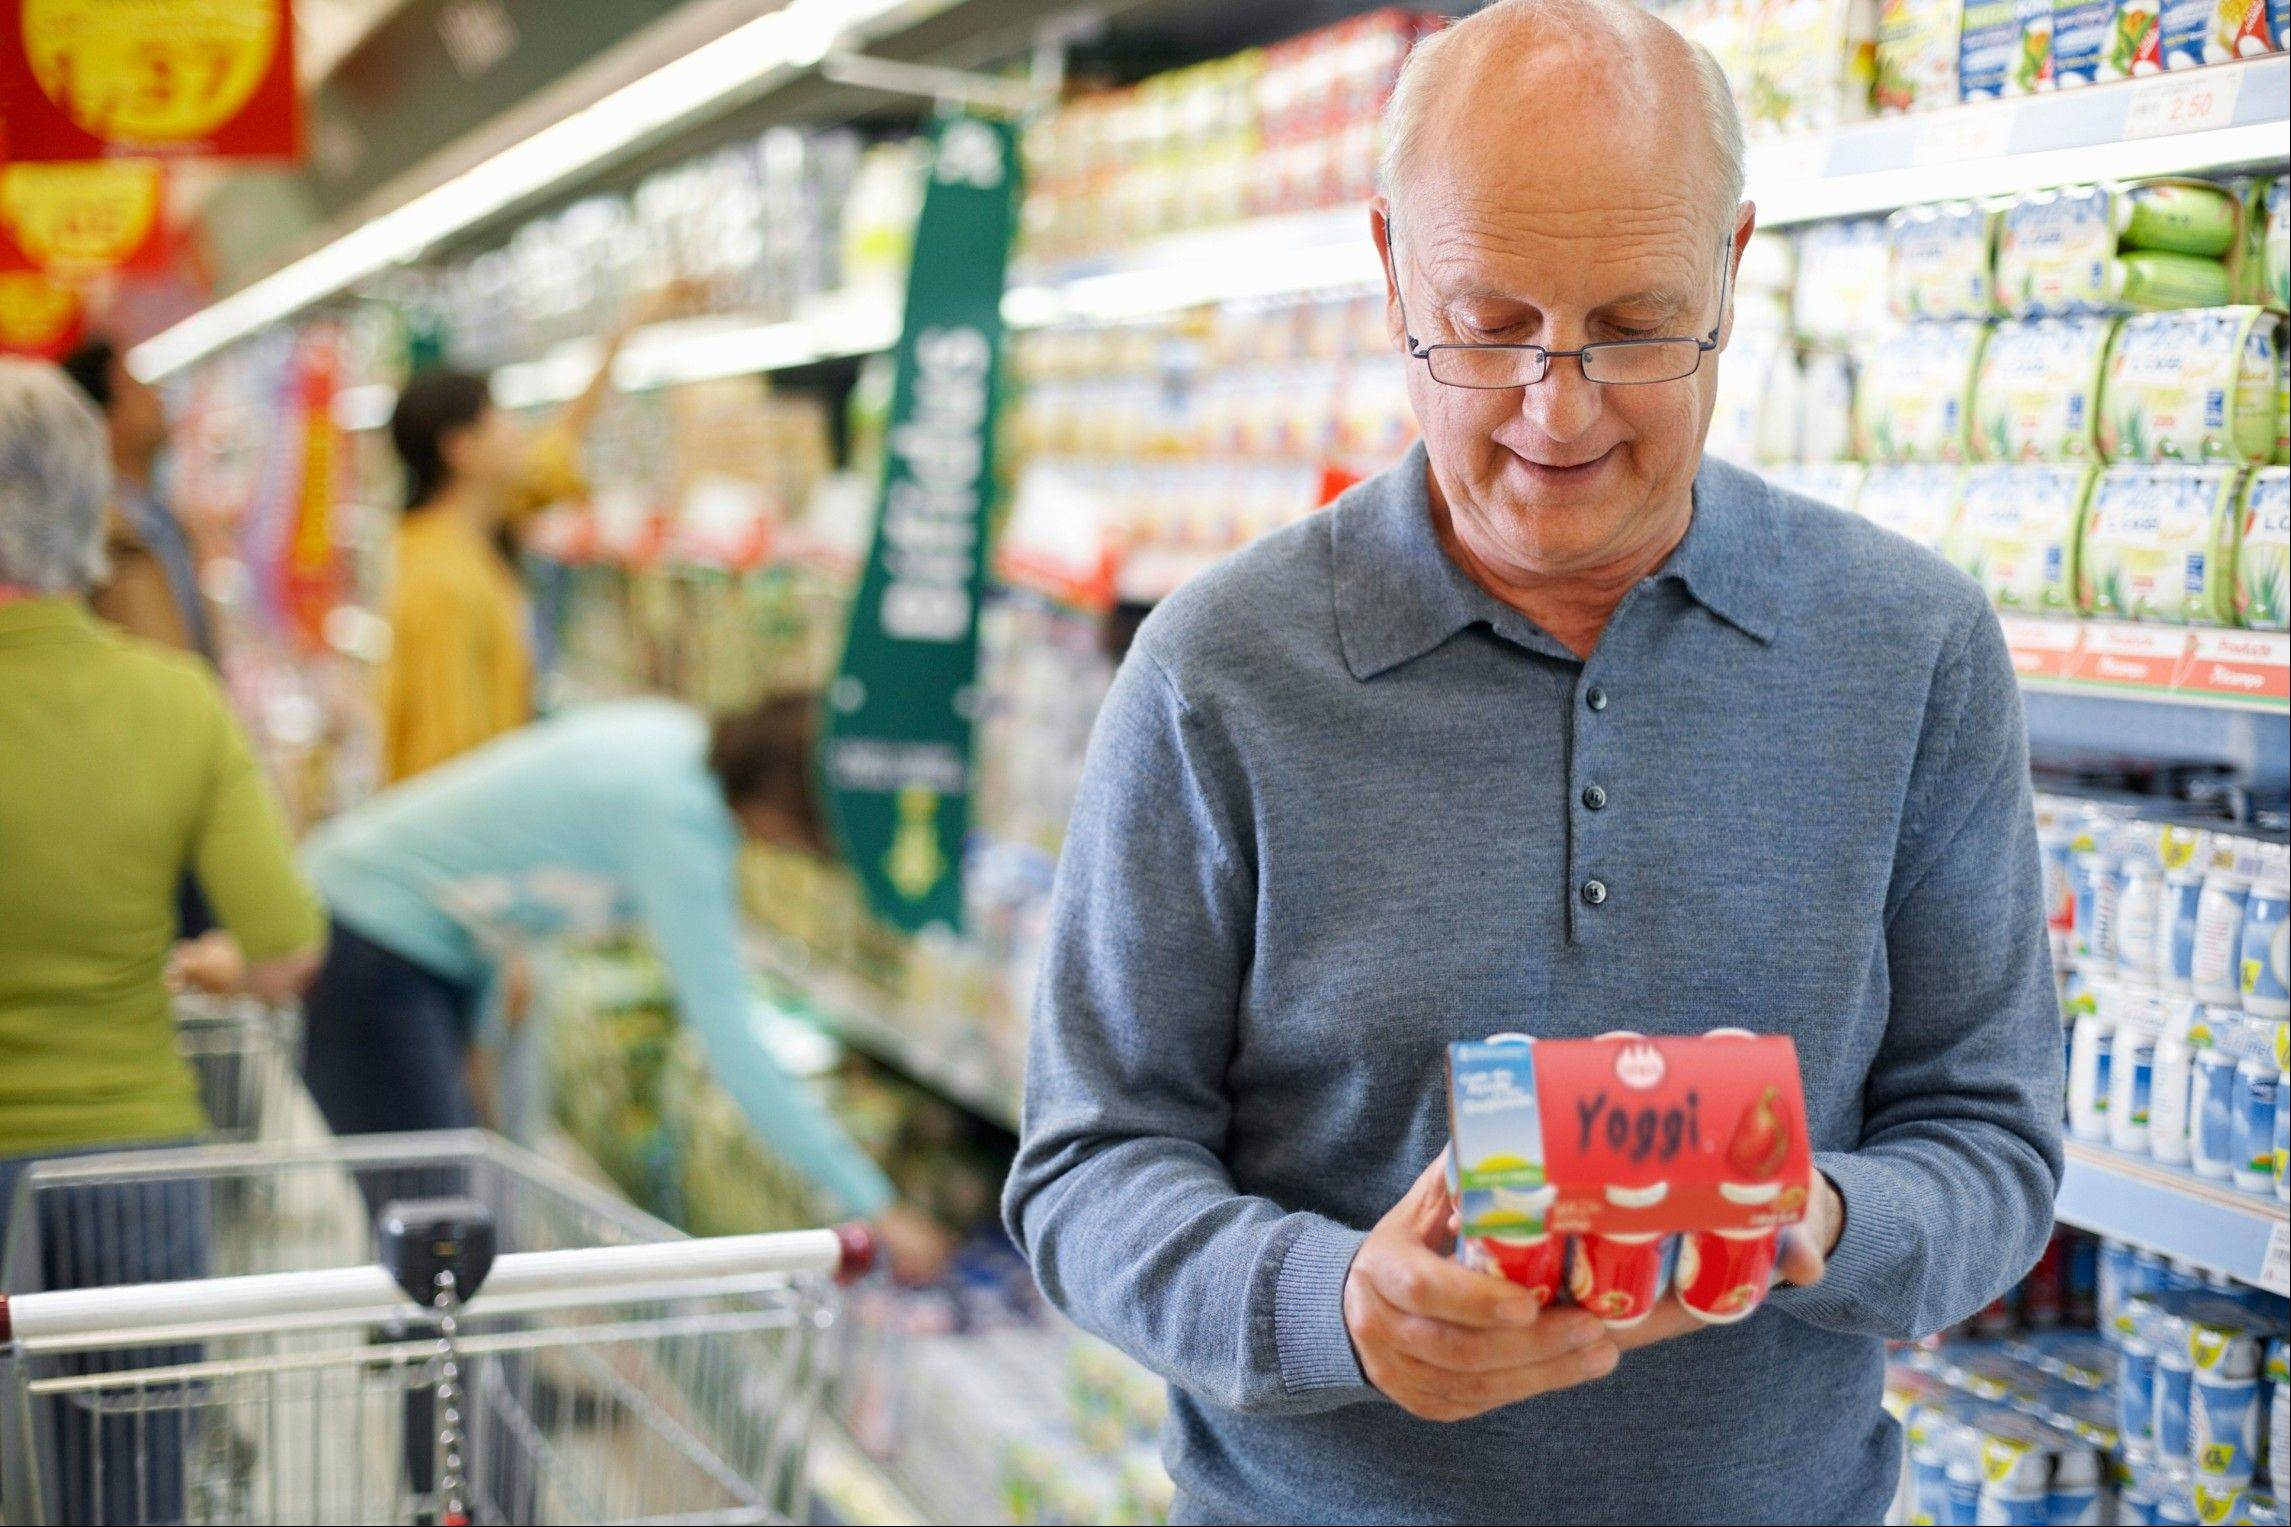 Buying yogurt at your next grocery store trip is a way to get healthy probiotics into your diet.